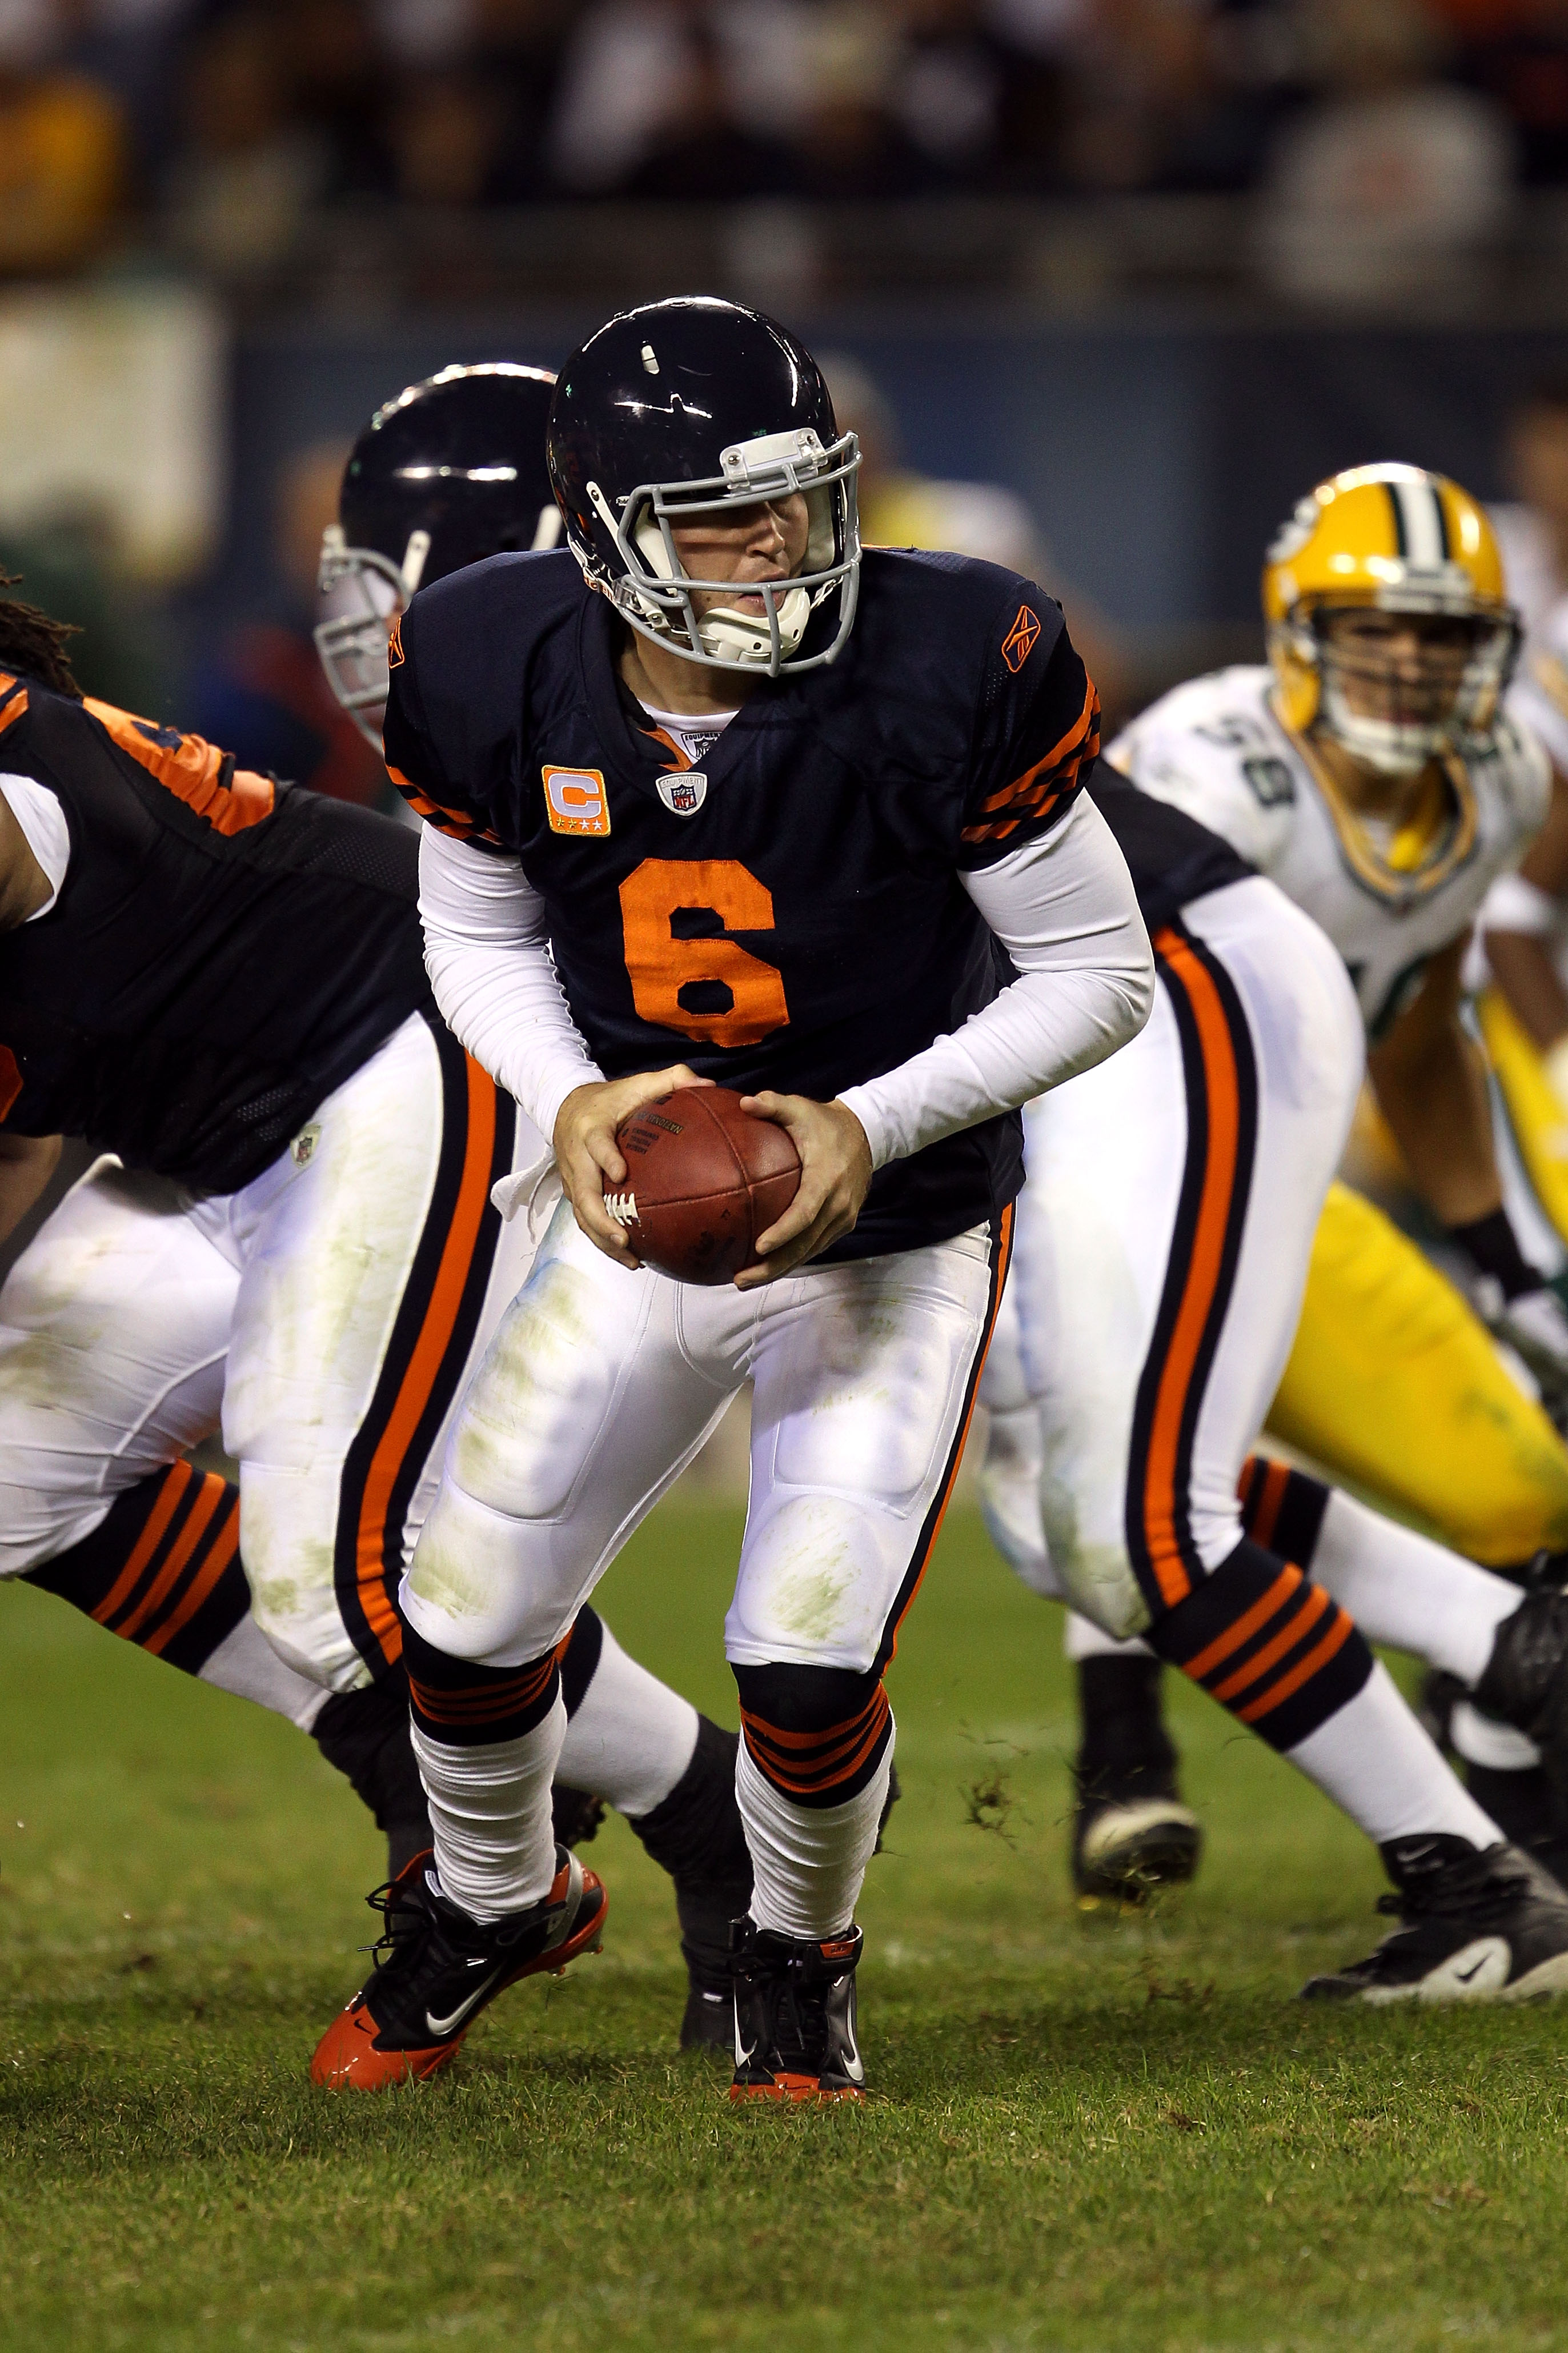 CHICAGO - SEPTEMBER 27:  Quarterback Jay Cutler #6 of the Chicago Bears turns to hand the ball off against the Green Bay Packers at Soldier Field on September 27, 2010 in Chicago, Illinois. The Bears won 20-17. (Photo by Jonathan Daniel/Getty Images)